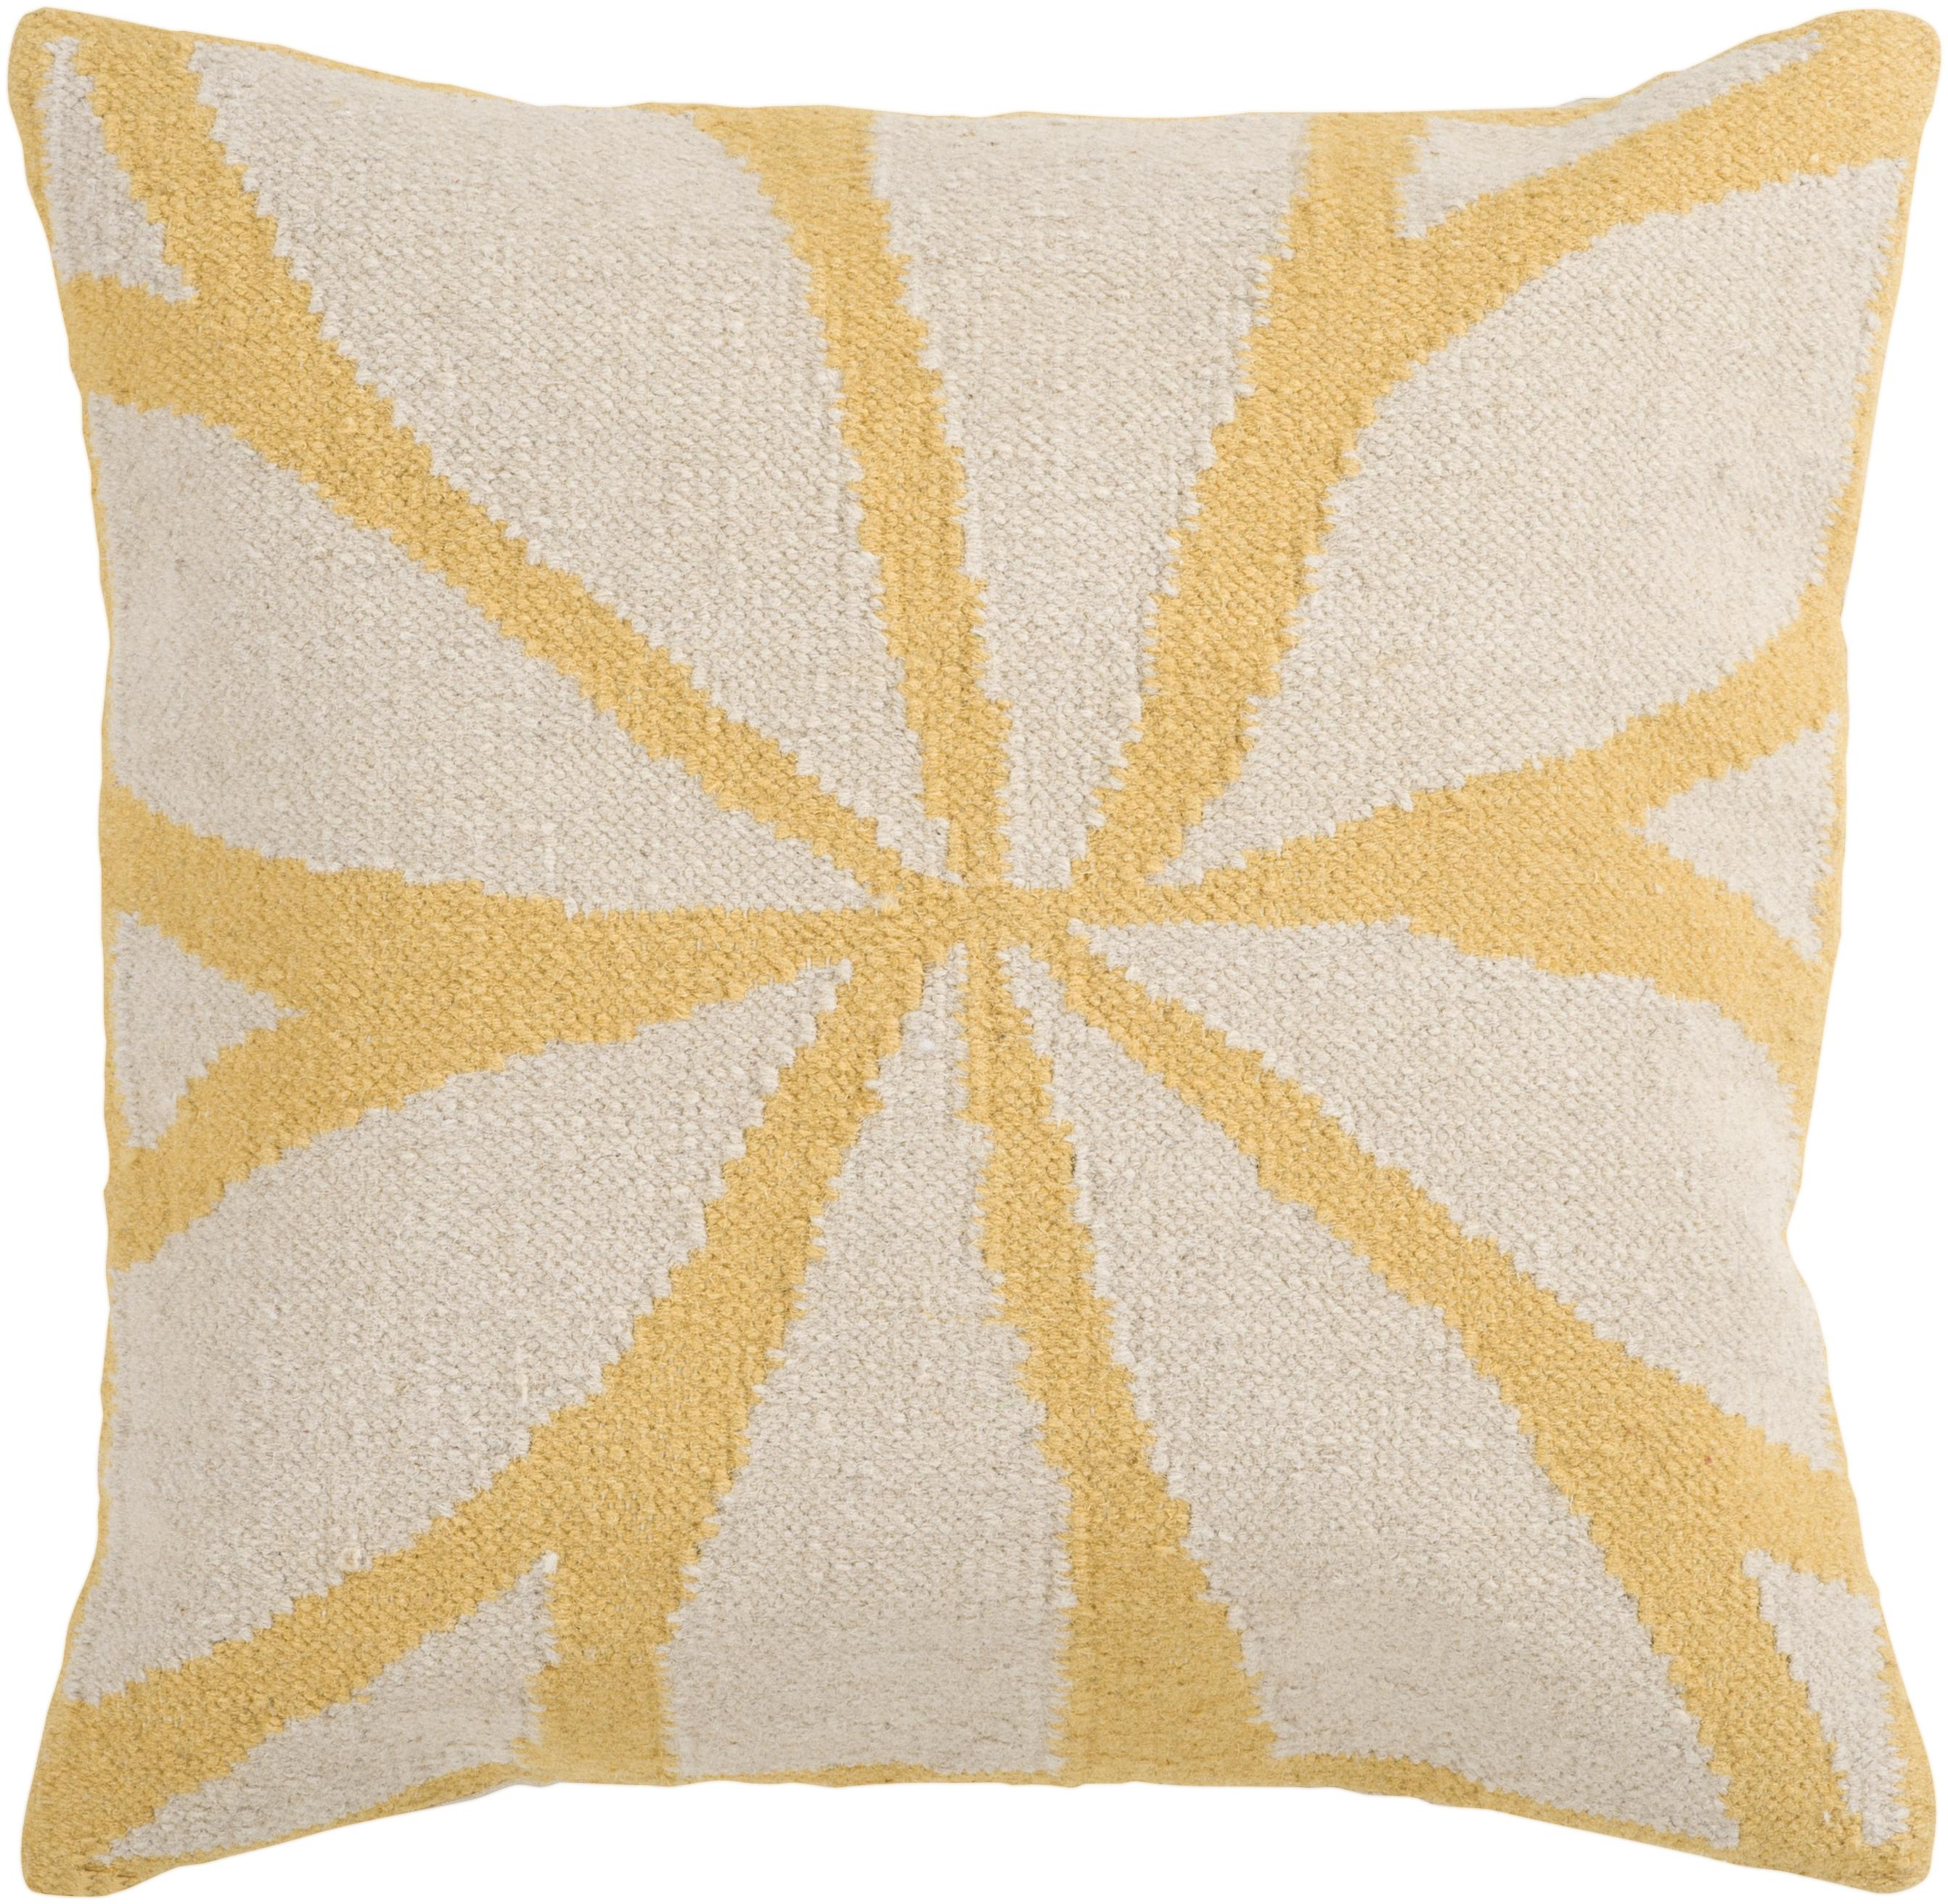 "Surya Pillows 18"" x 18"" Pillow - Item Number: FA012-1818P"